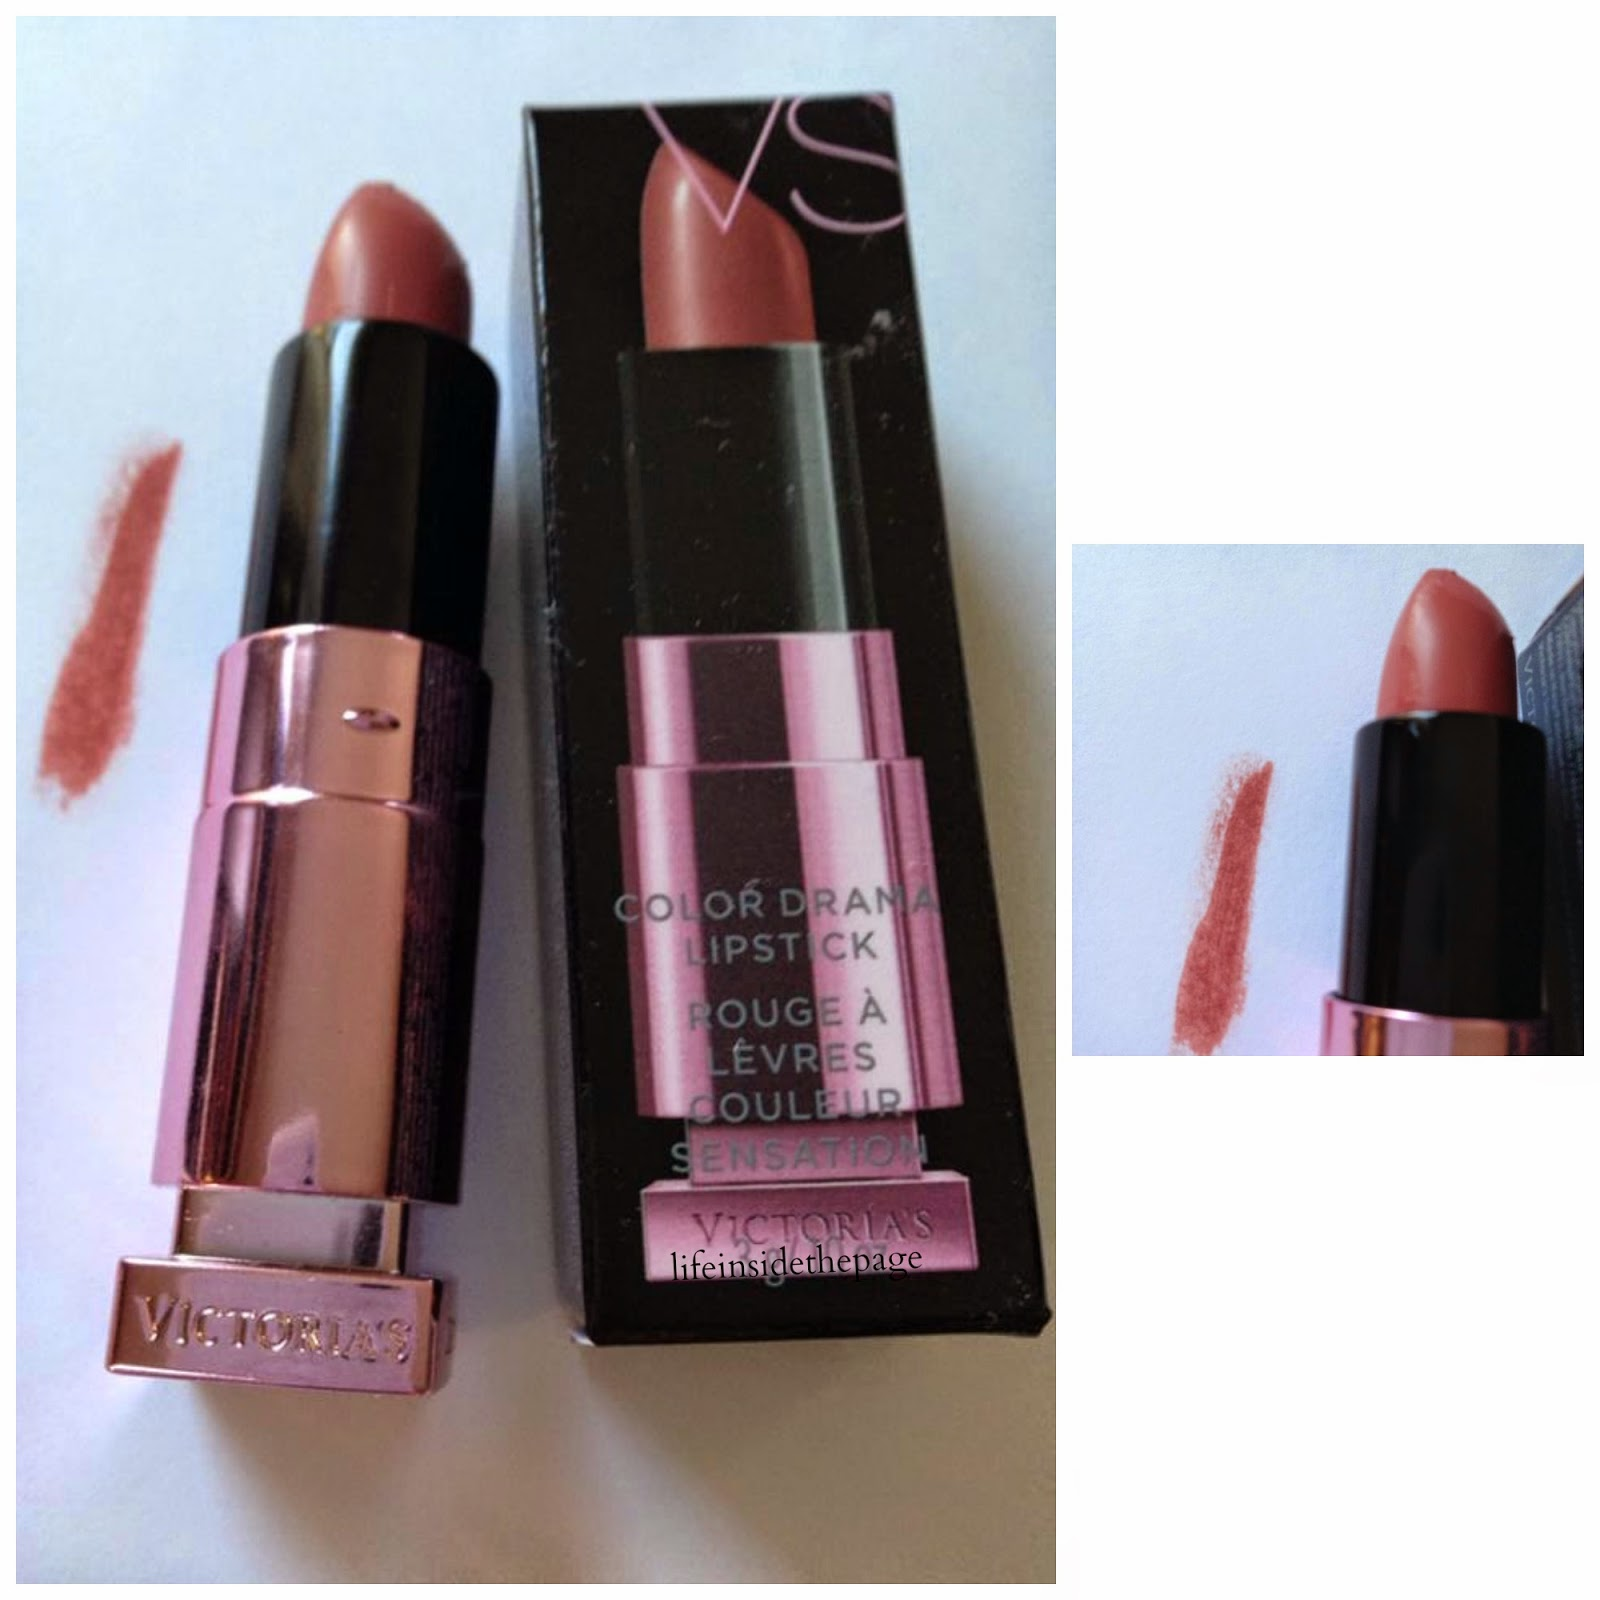 Victoria's Secret | Bombshell SUMMER | Color Drama Lipstick